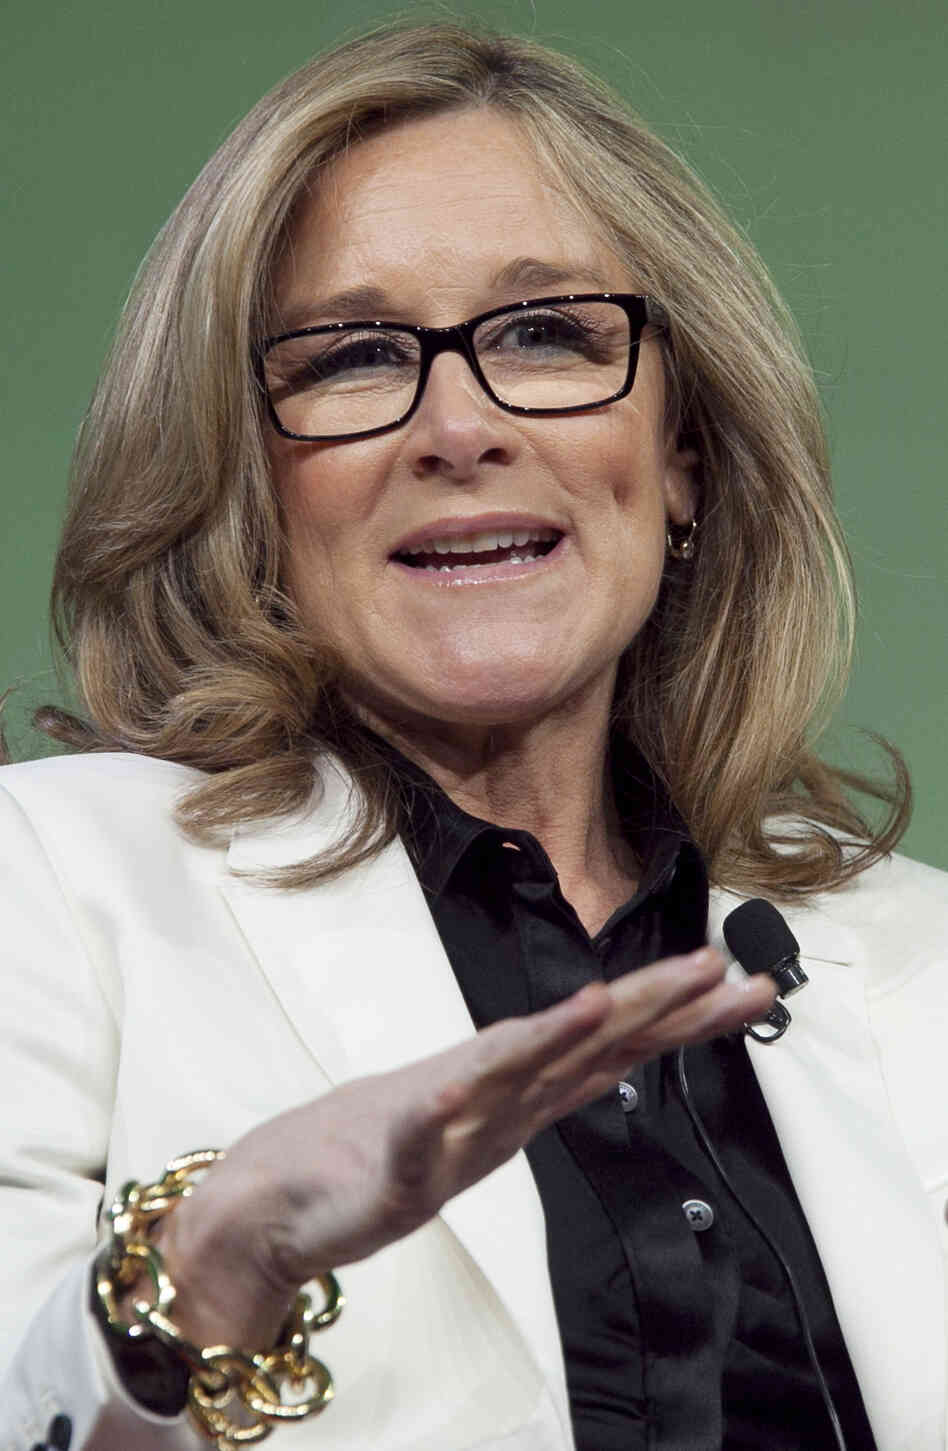 Angela Ahrendts is leaving her post as CEO of Burberry to head the online and retail division at Apple. She